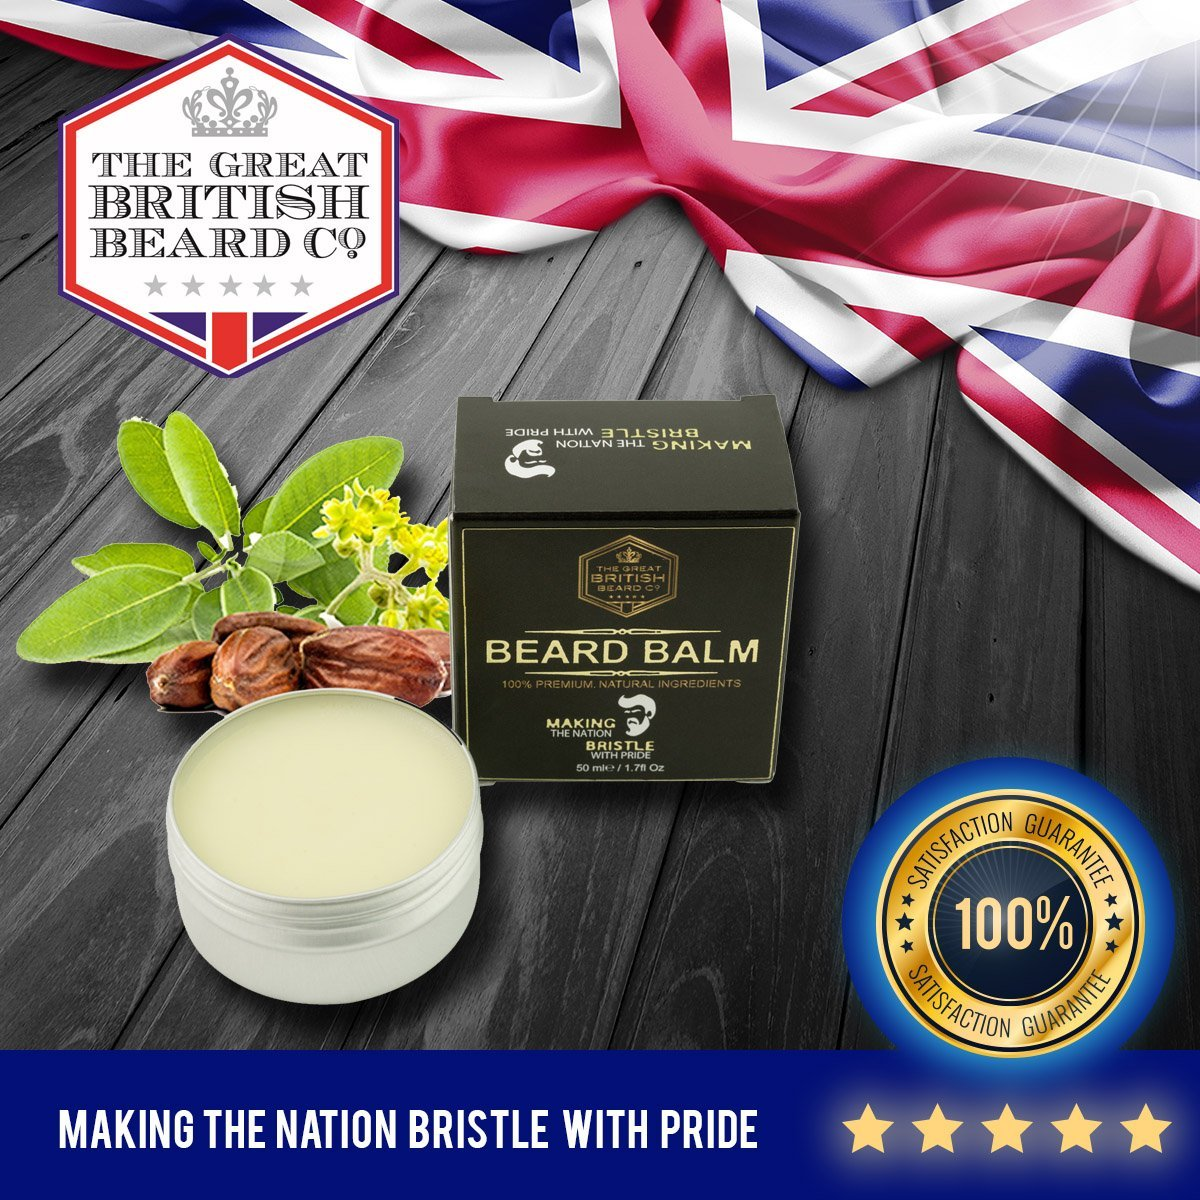 Beard Balm - MADE IN UK | 100% Premium Natural Leave-in Conditioner | Beard Wax for Men - Styling - Non Greasy - Deep Beard Conditioner | Natural Organic Oils and Butters ECONNECT Limited